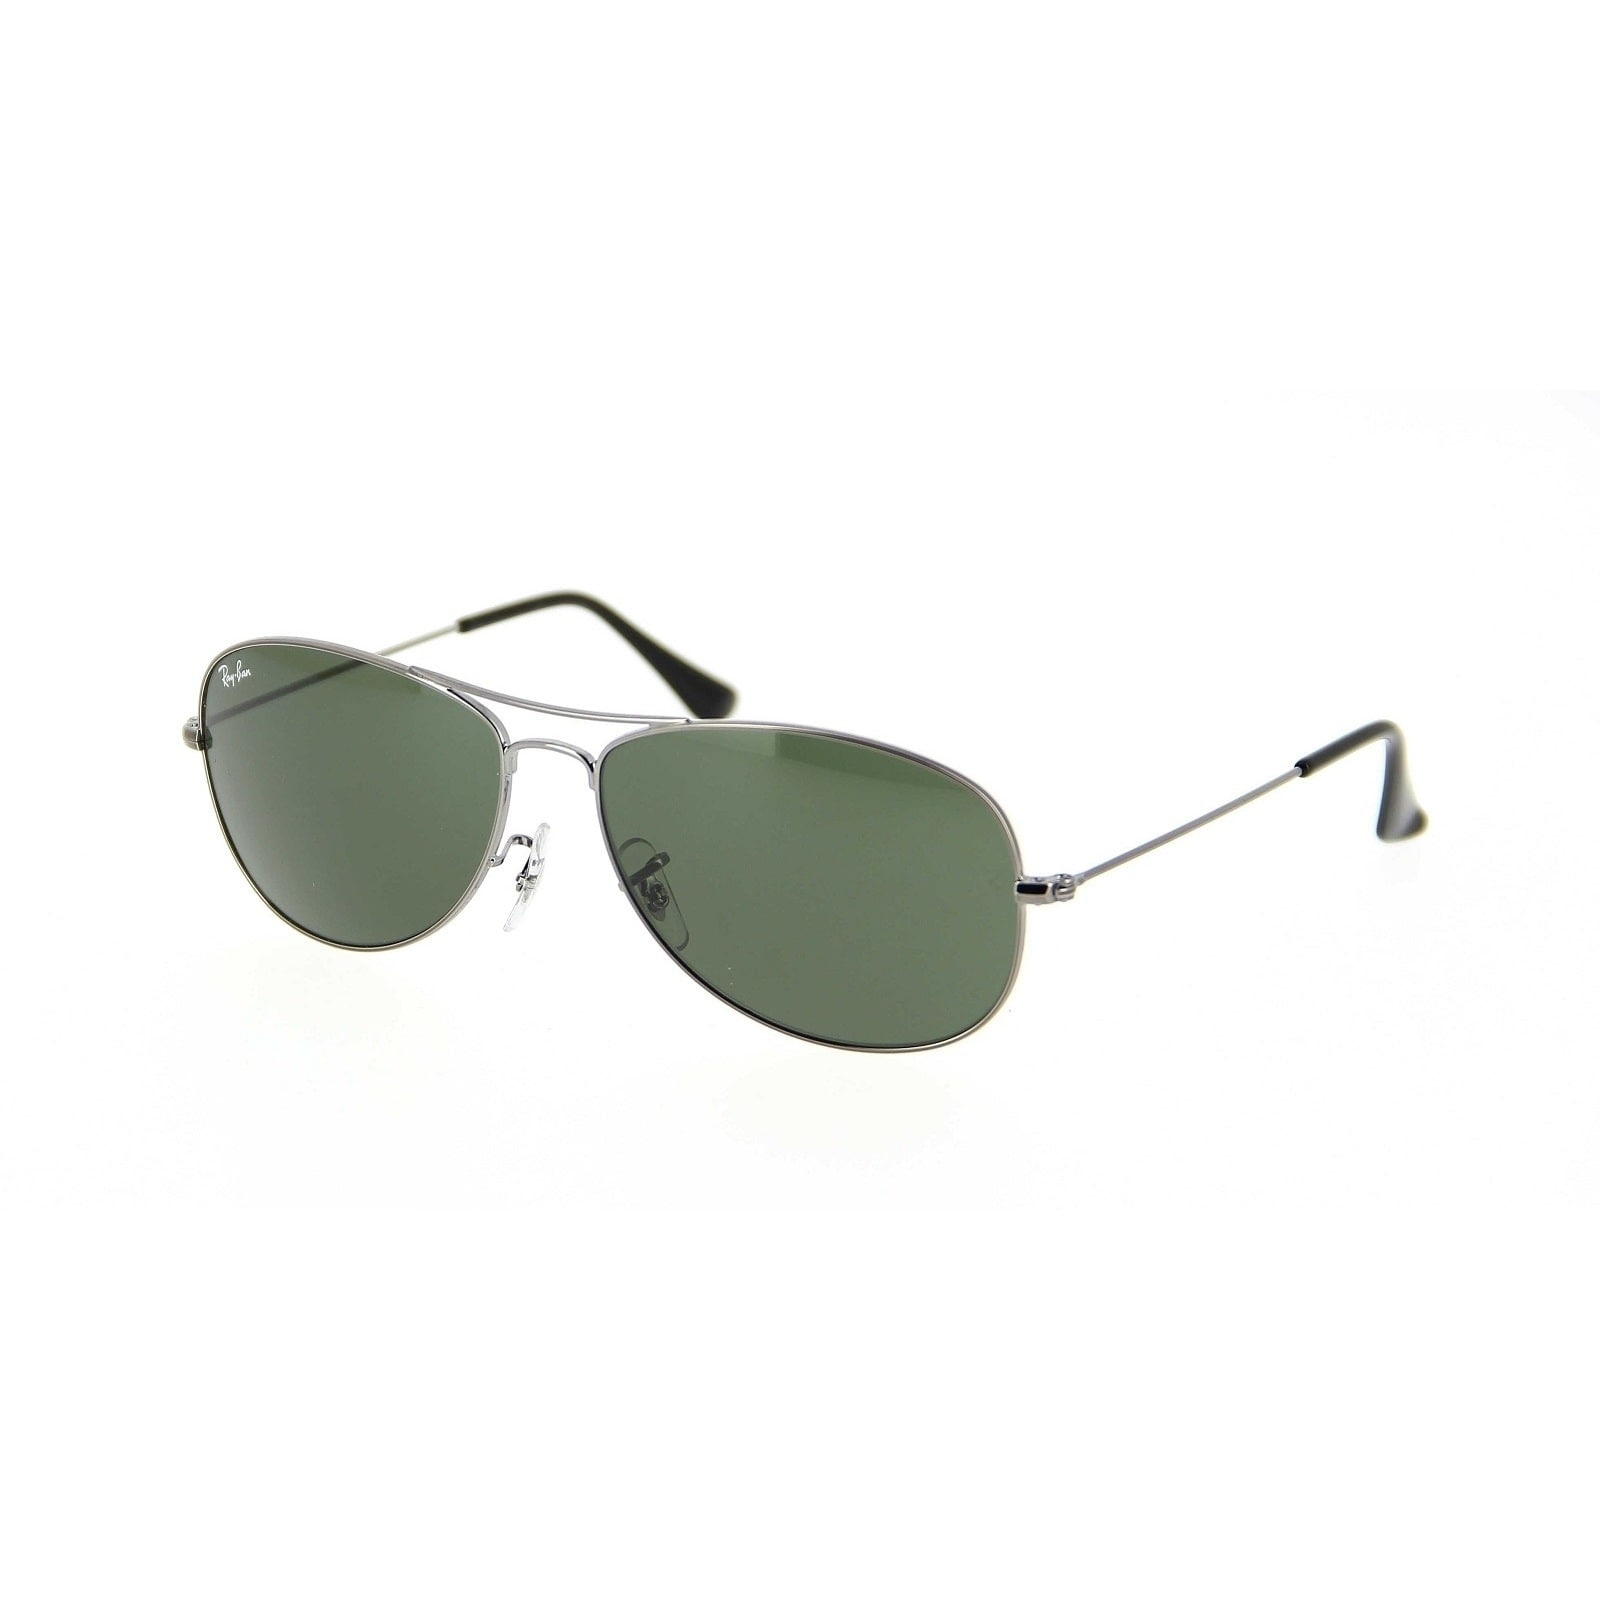 d4819ea1167 Ray-Ban RB3362 004 Cockpit Gunmetal Frame Green Classic 59mm Lens Sunglasses